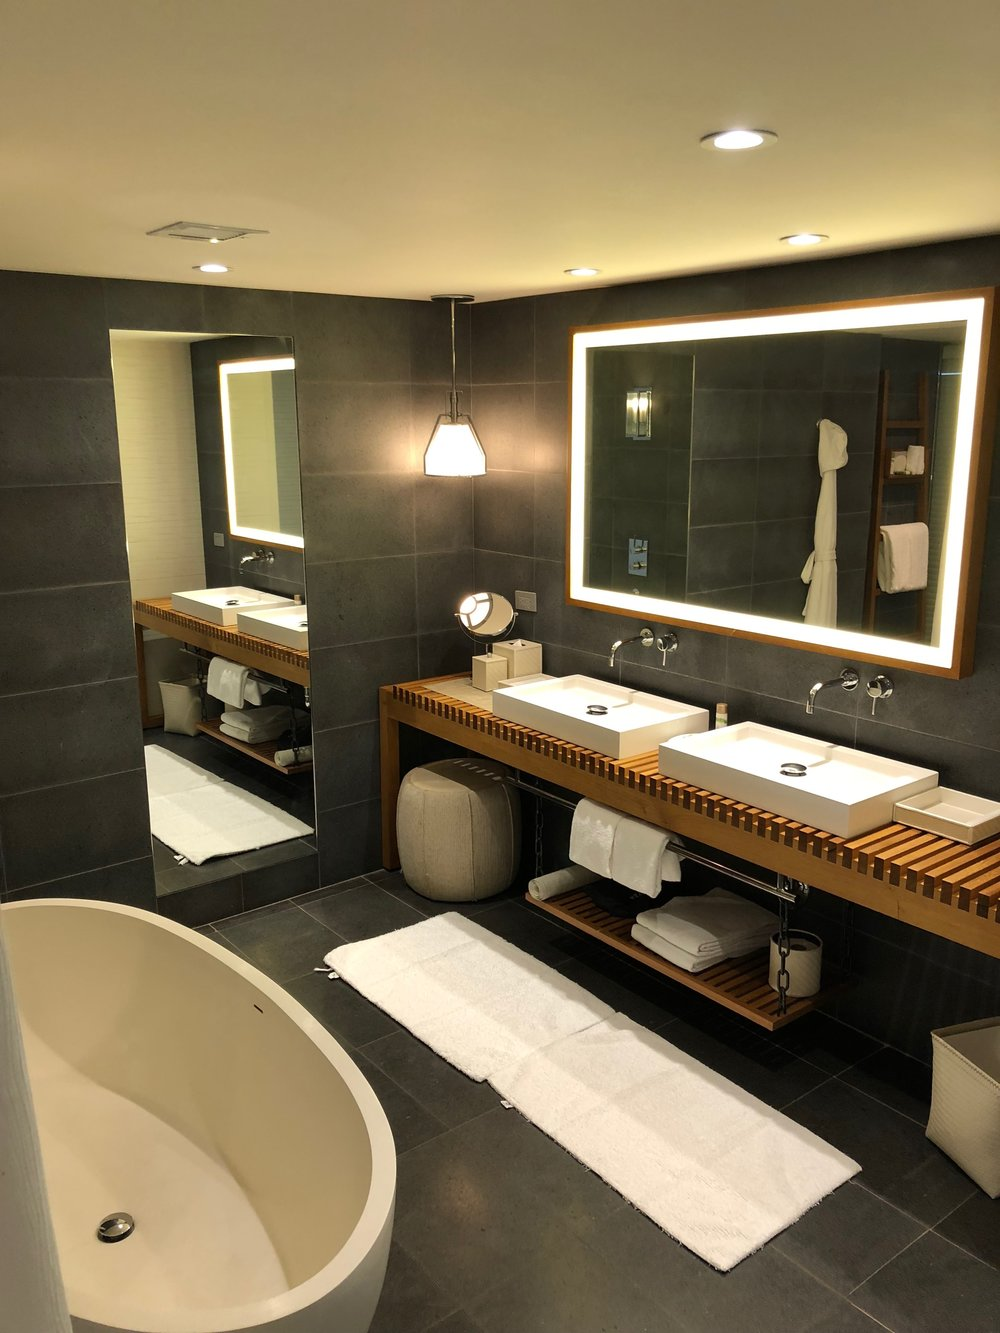 Bathroom of the Deluxe Suite